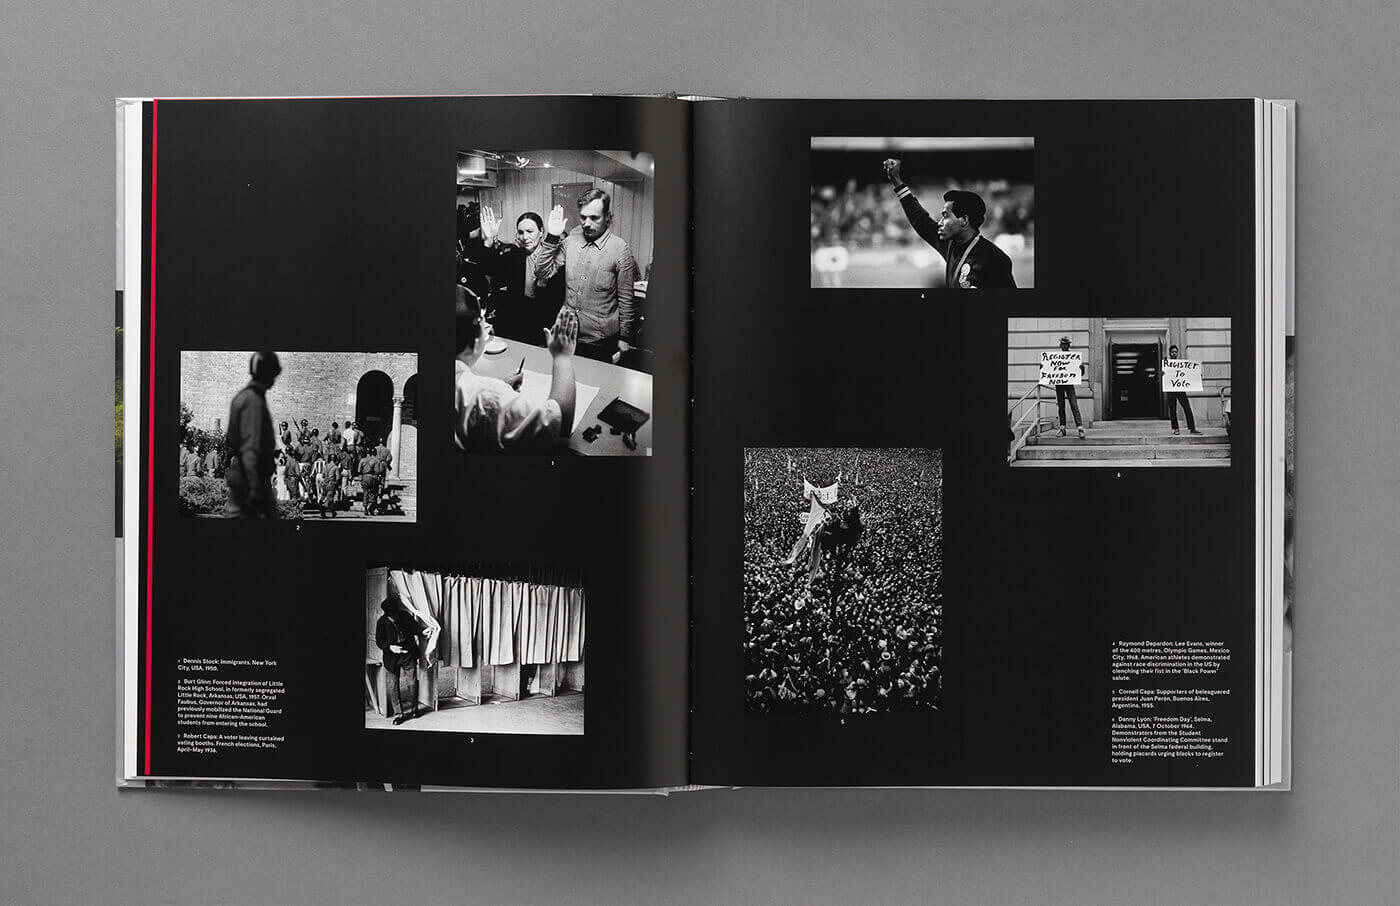 The inner pages of a book presenting black and white photos